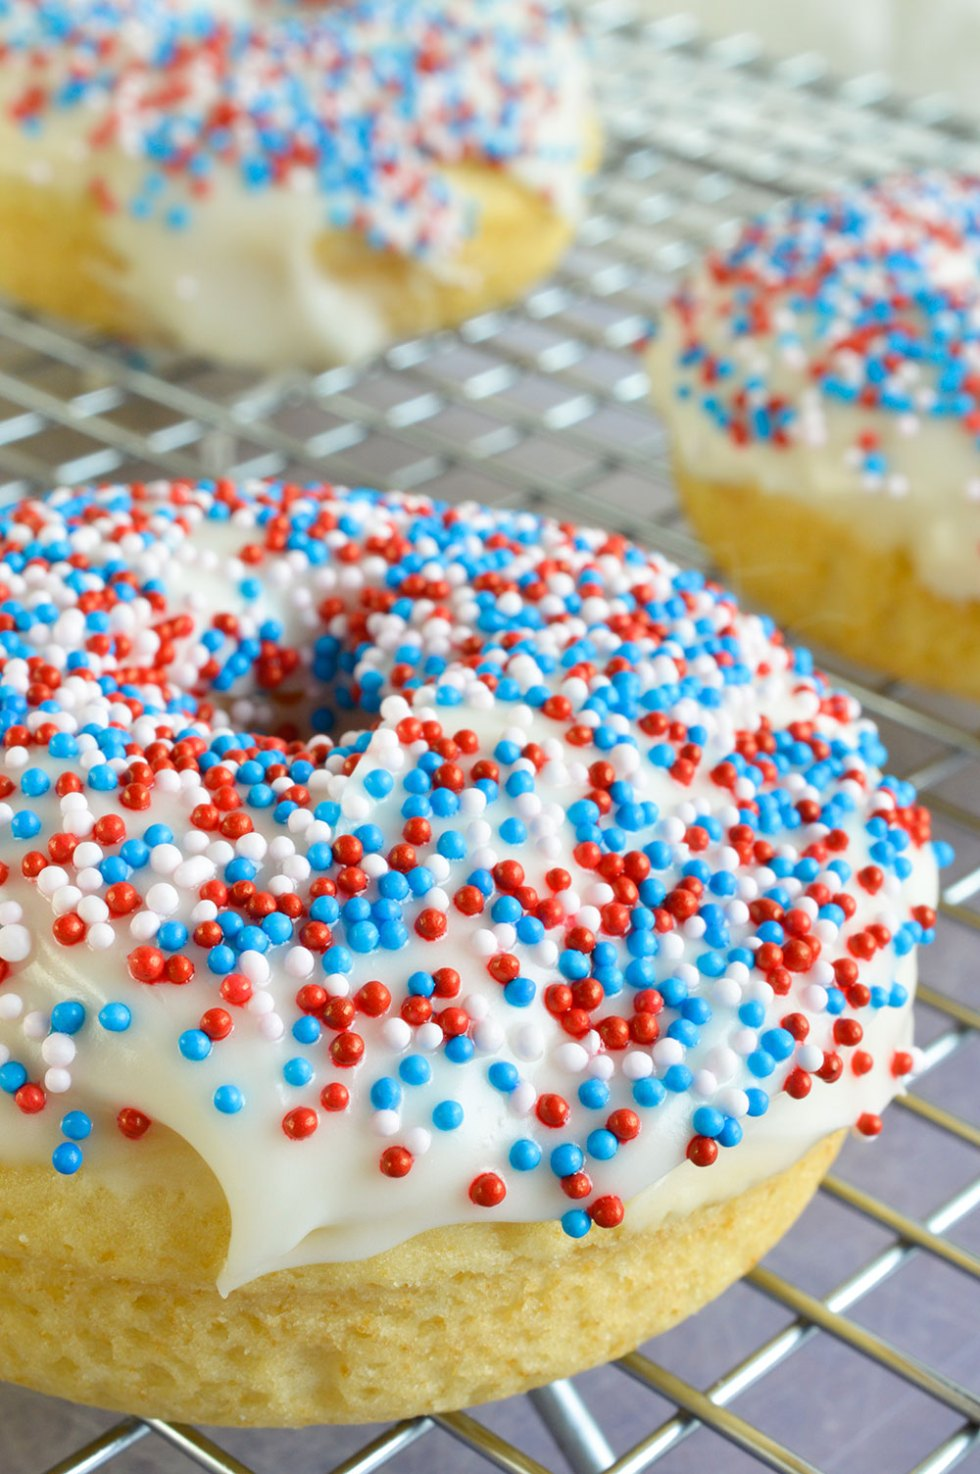 These Homemade Baked Donuts are a simple vanilla cake, thick glaze and nonpareils sprinkles. Red, White and Blue Doughnuts make the perfect 4th of July dessert recipe!